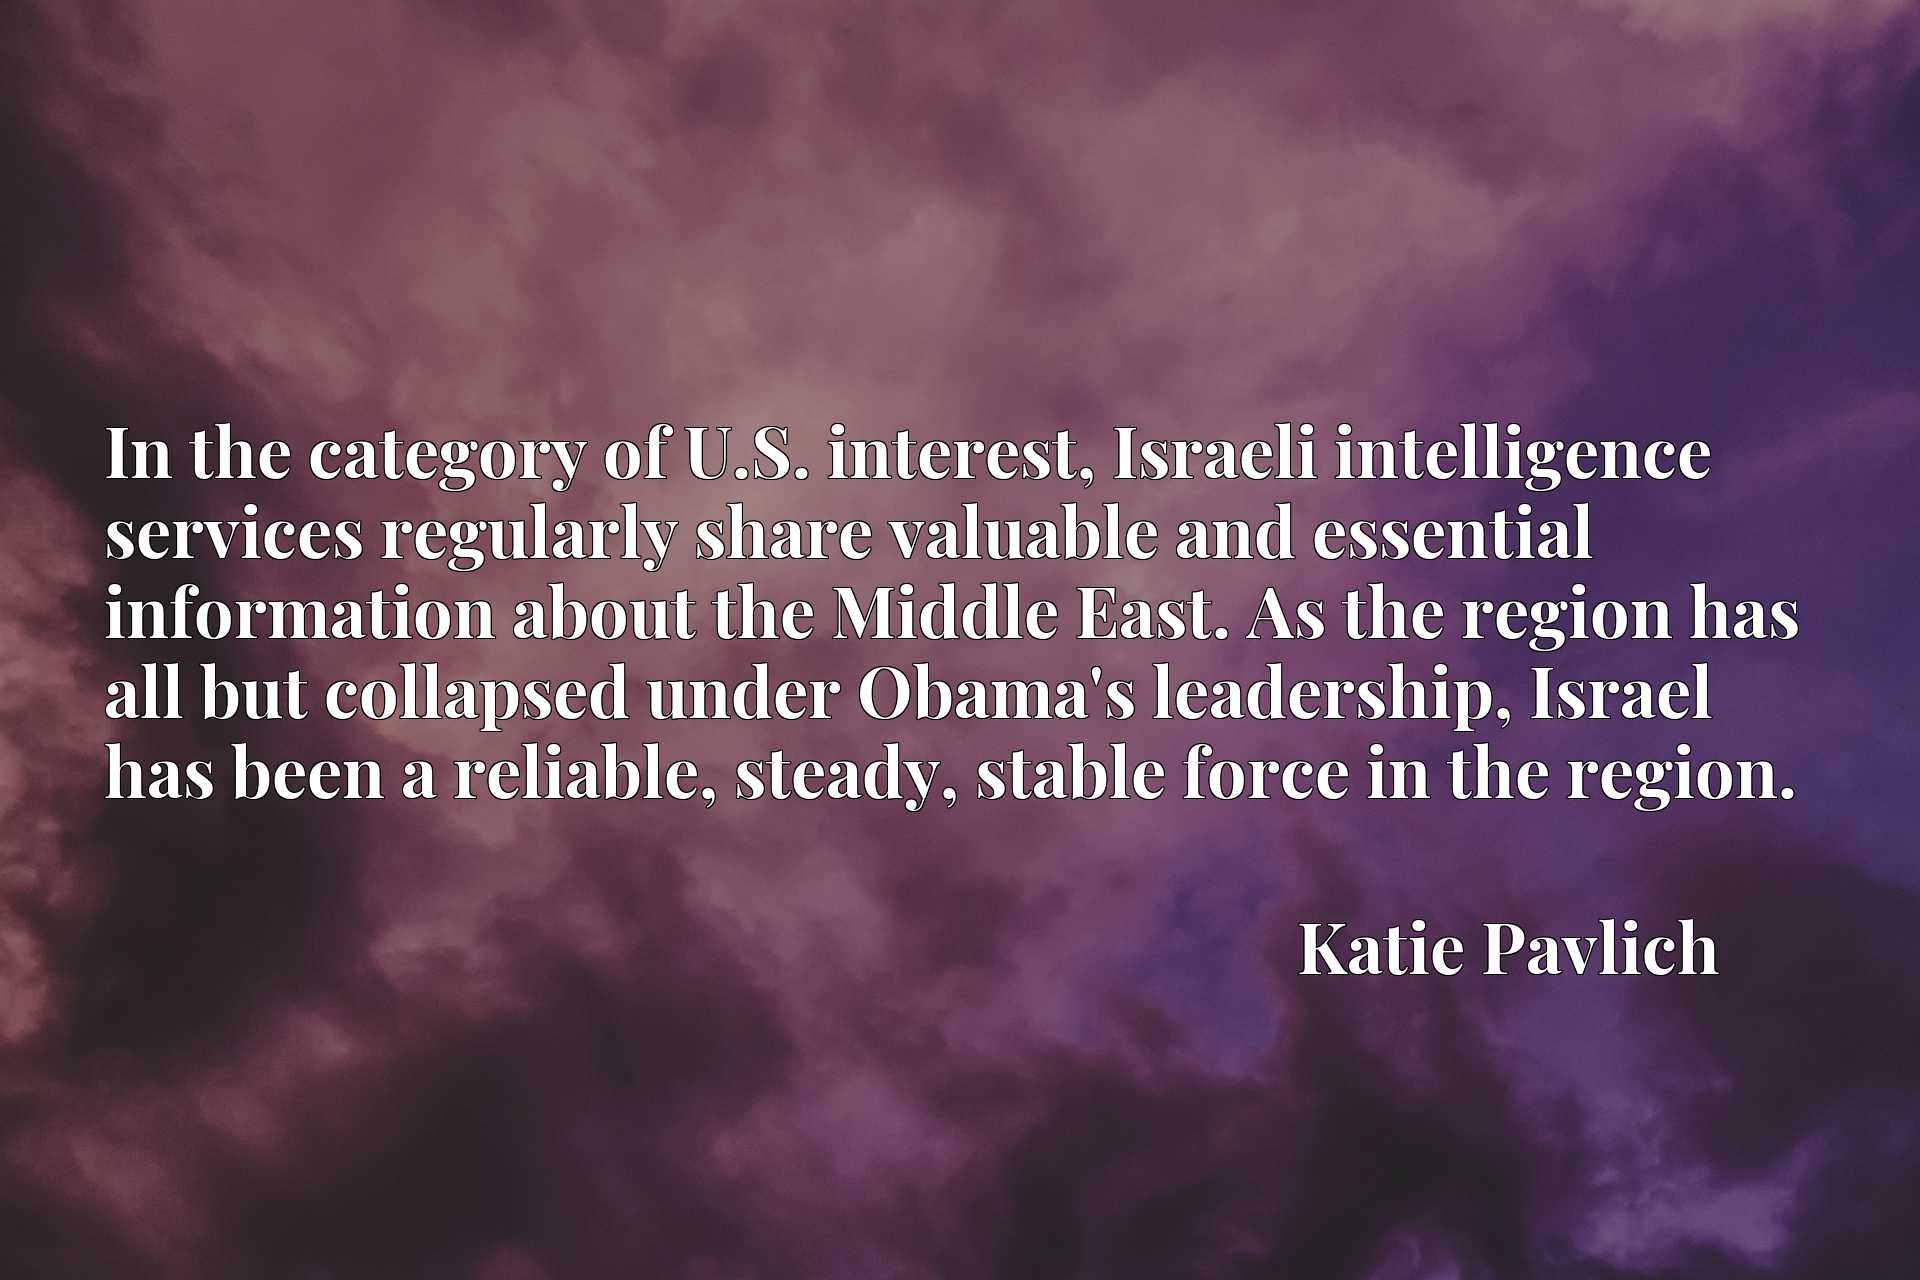 Quote Picture :In the category of U.S. interest, Israeli intelligence services regularly share valuable and essential information about the Middle East. As the region has all but collapsed under Obama's leadership, Israel has been a reliable, steady, stable force in the region.